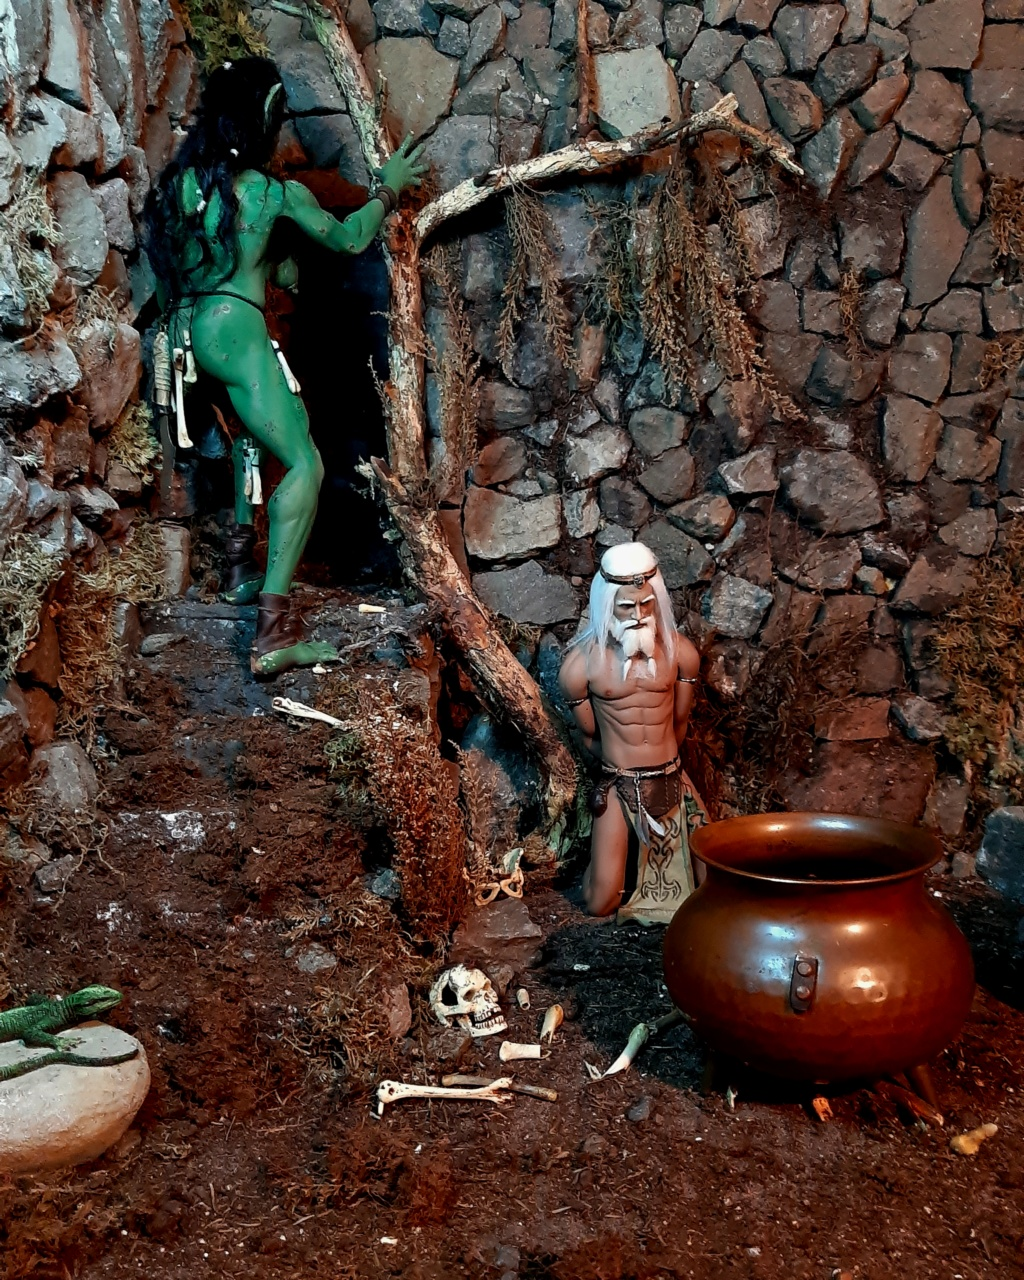 Troll Cave Chapter One and Two: The Escape of Skerf (Blood, violence, sexual content) please adults only (updated July 2019) E10